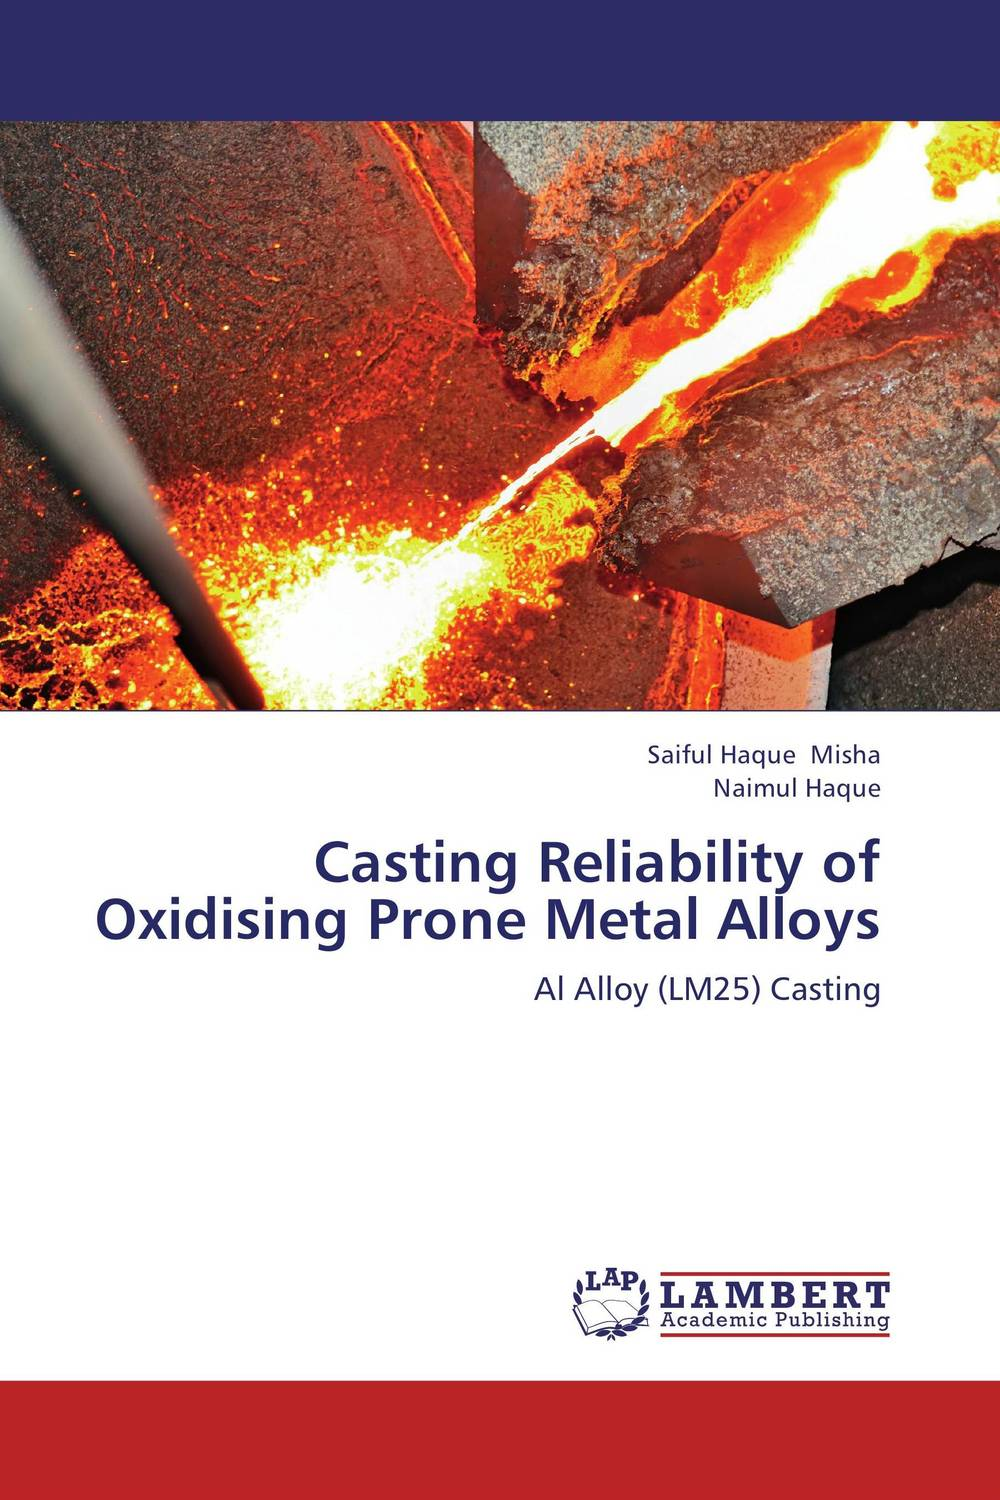 Casting Reliability of Oxidising Prone Metal Alloys